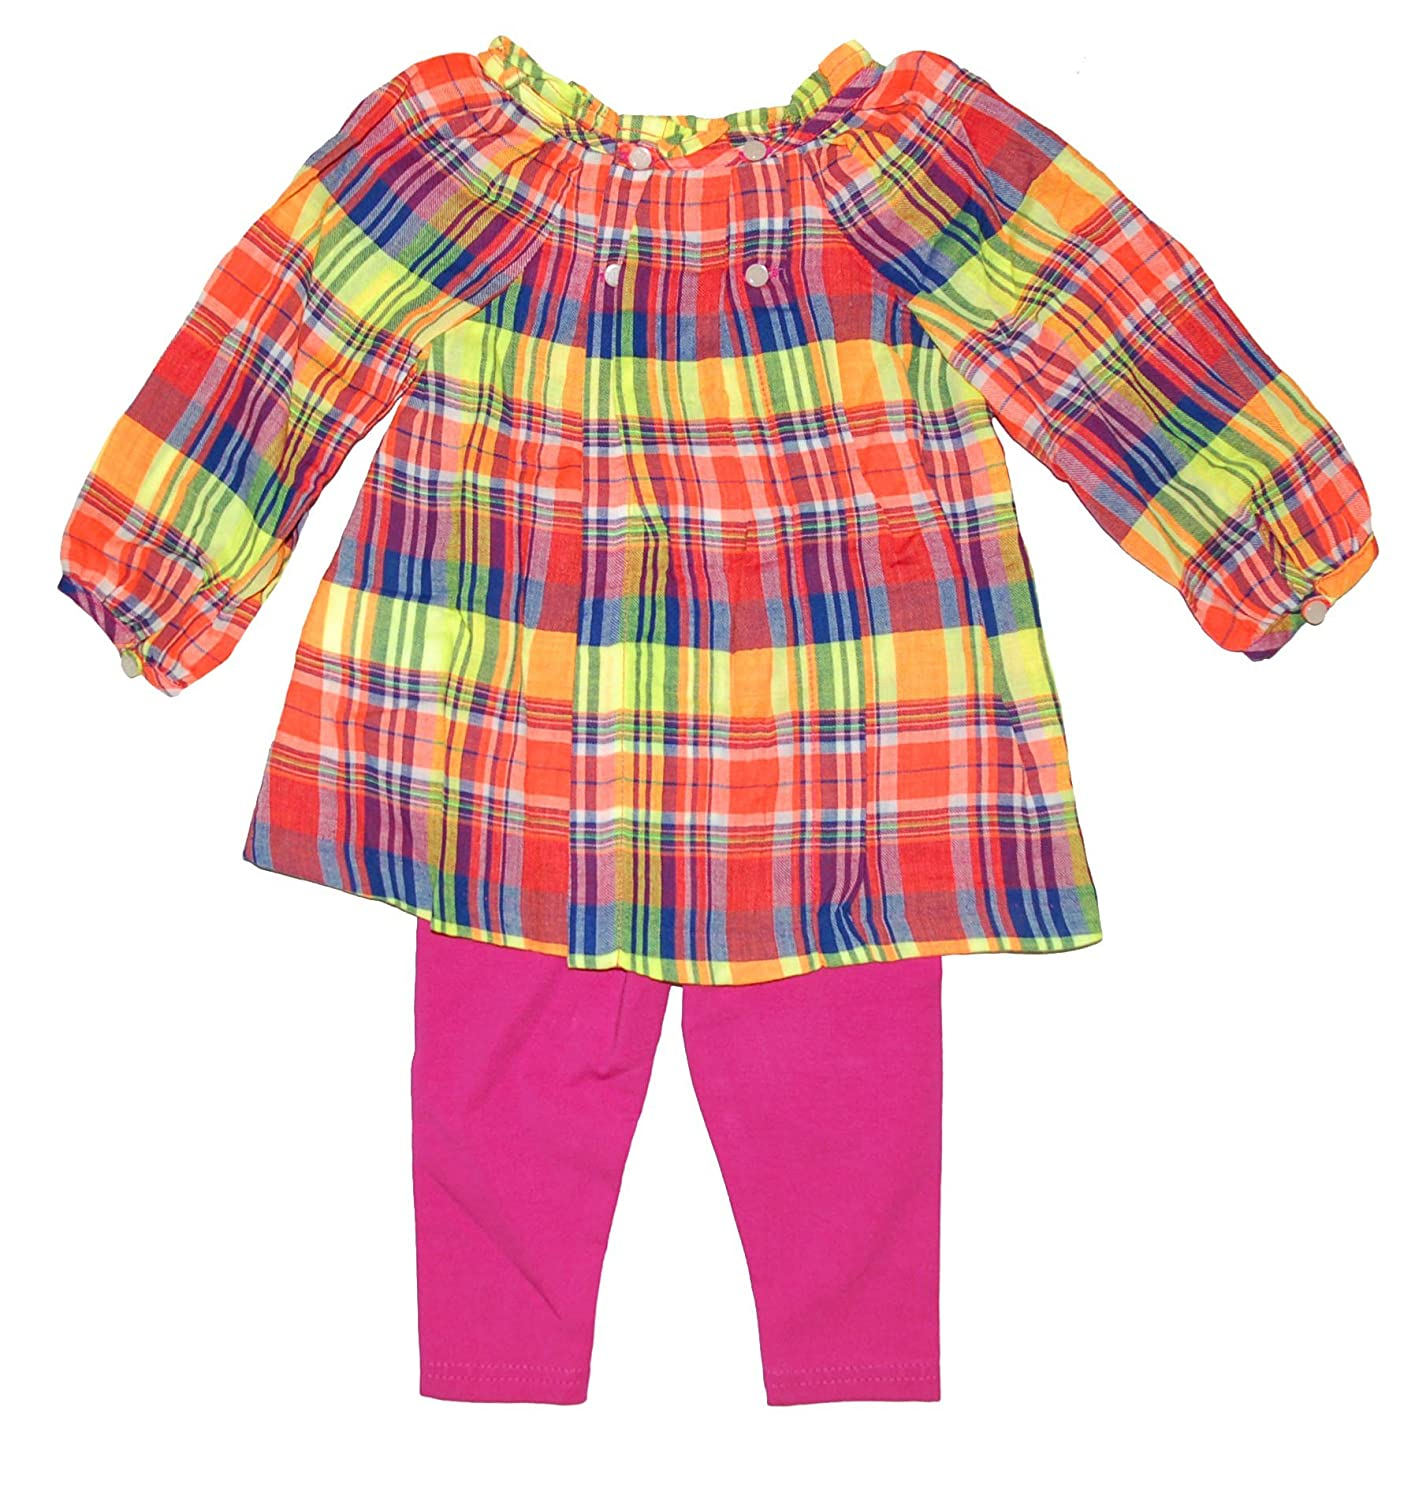 Ralph Lauren Polo Baby Girls Plaid Tunic & Stretch Cotton Leggings Set (24 Months)